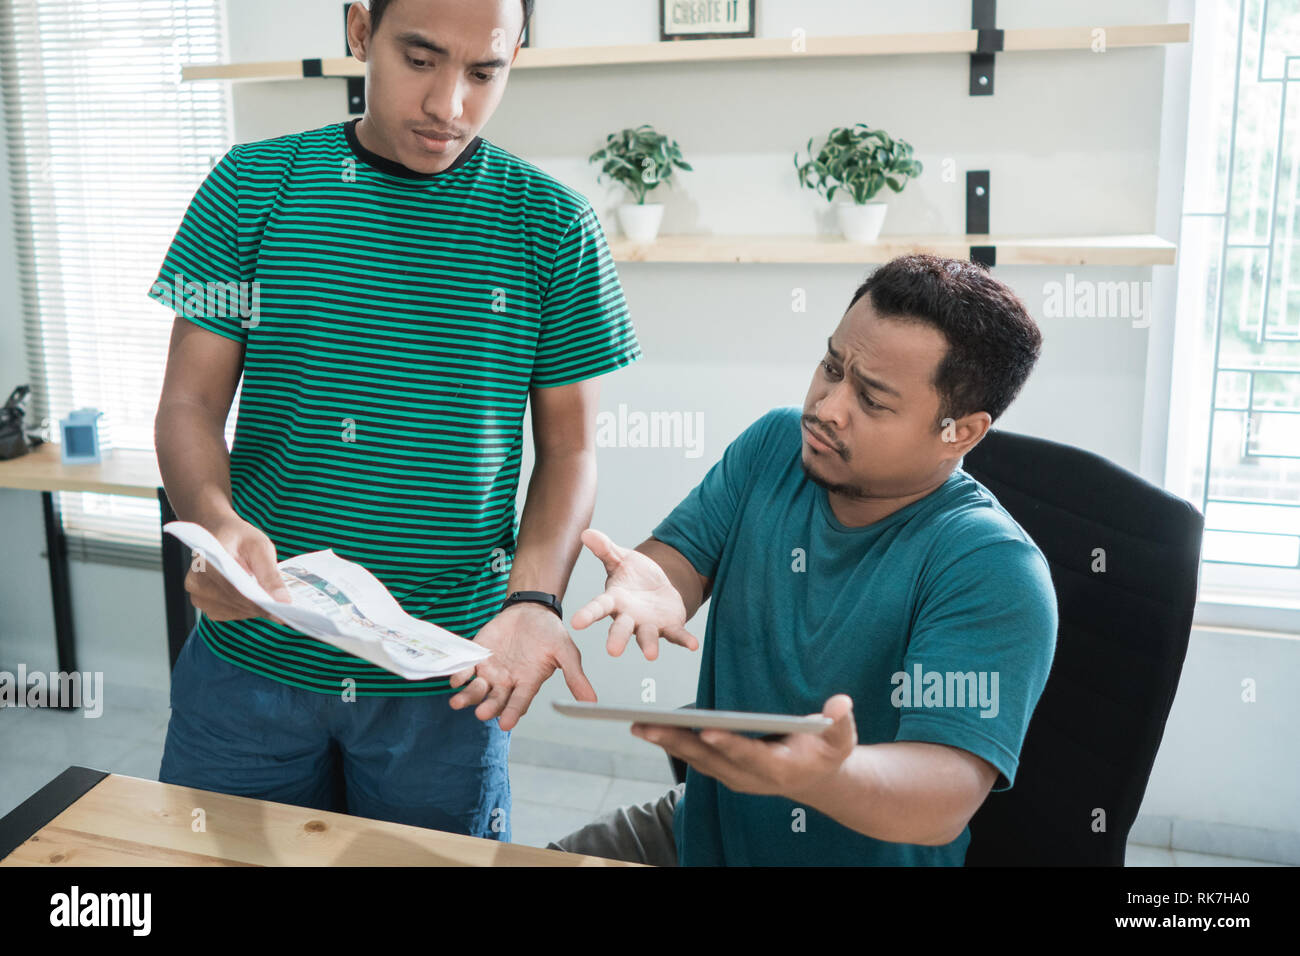 portrait of two young men dialogues and have  arguments about new project in the office room - Stock Image